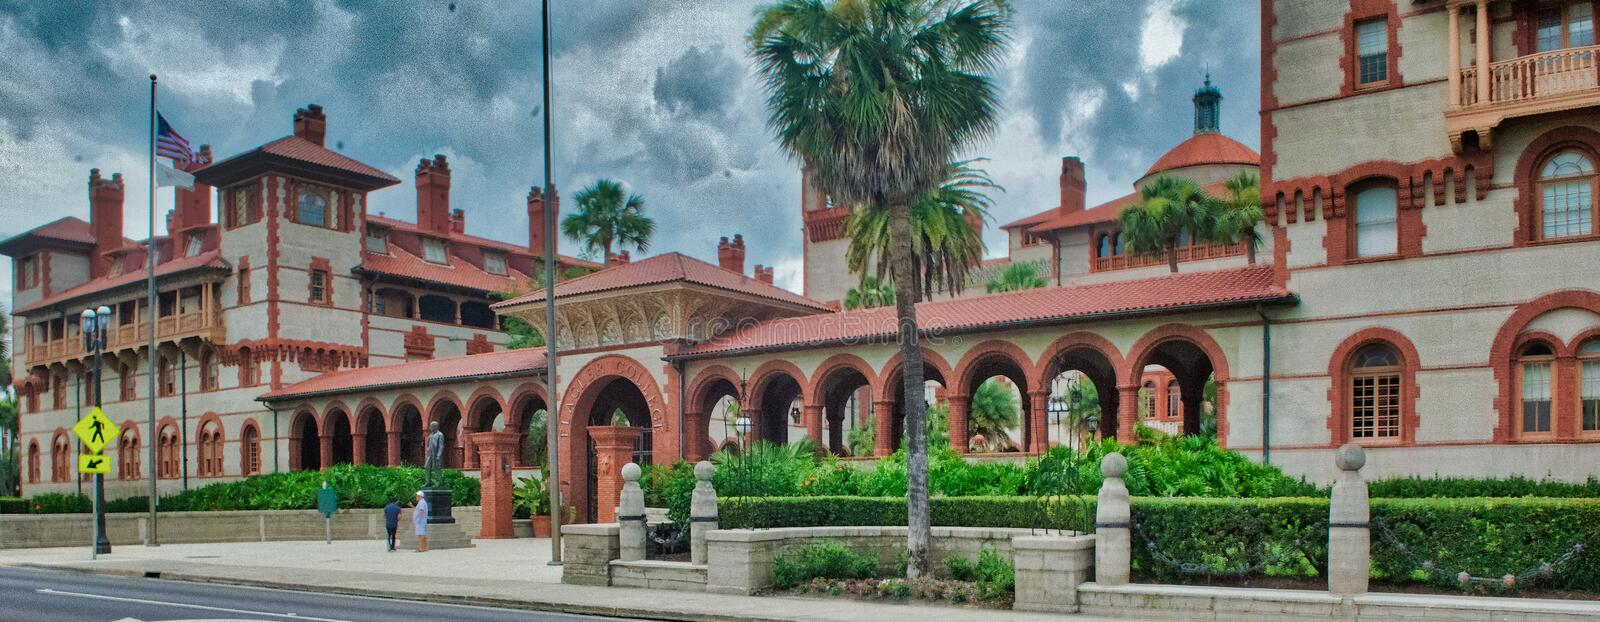 Flagler College royalty free stock image